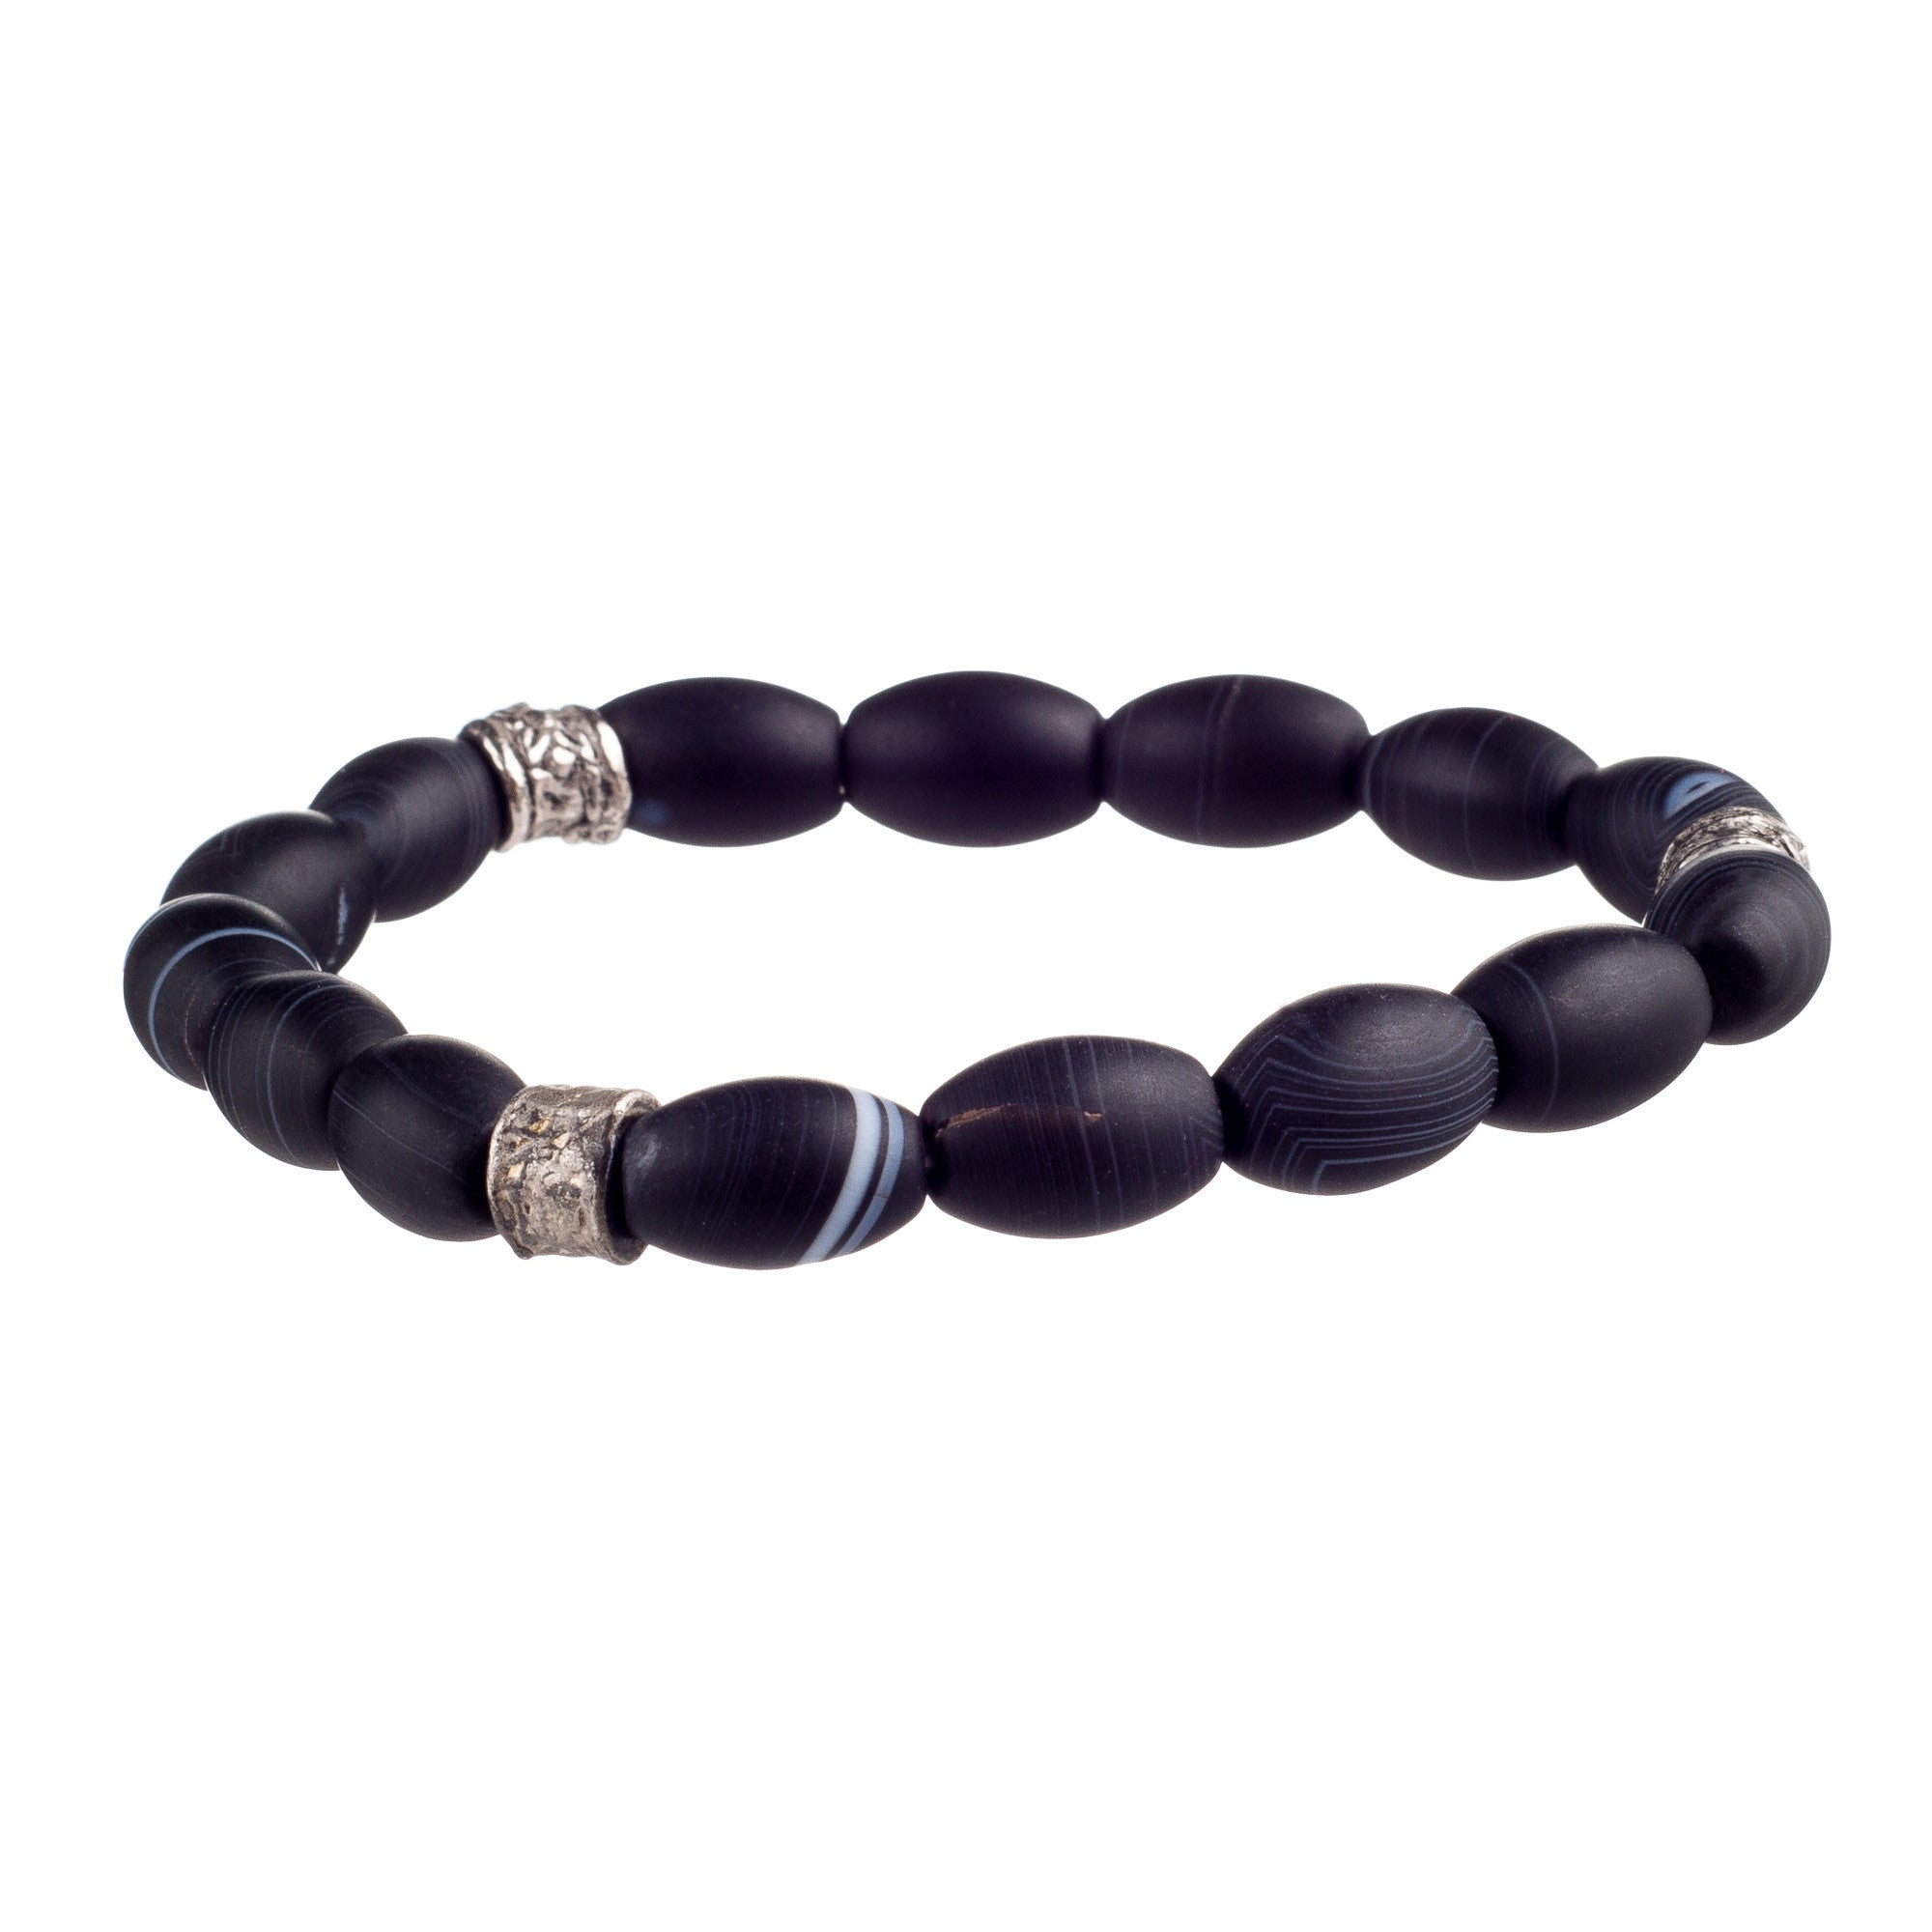 hematite bracelet favorite men matte for with in jewelry from snow black on bangles gifts beads bracelets item spacers agate fun accessories